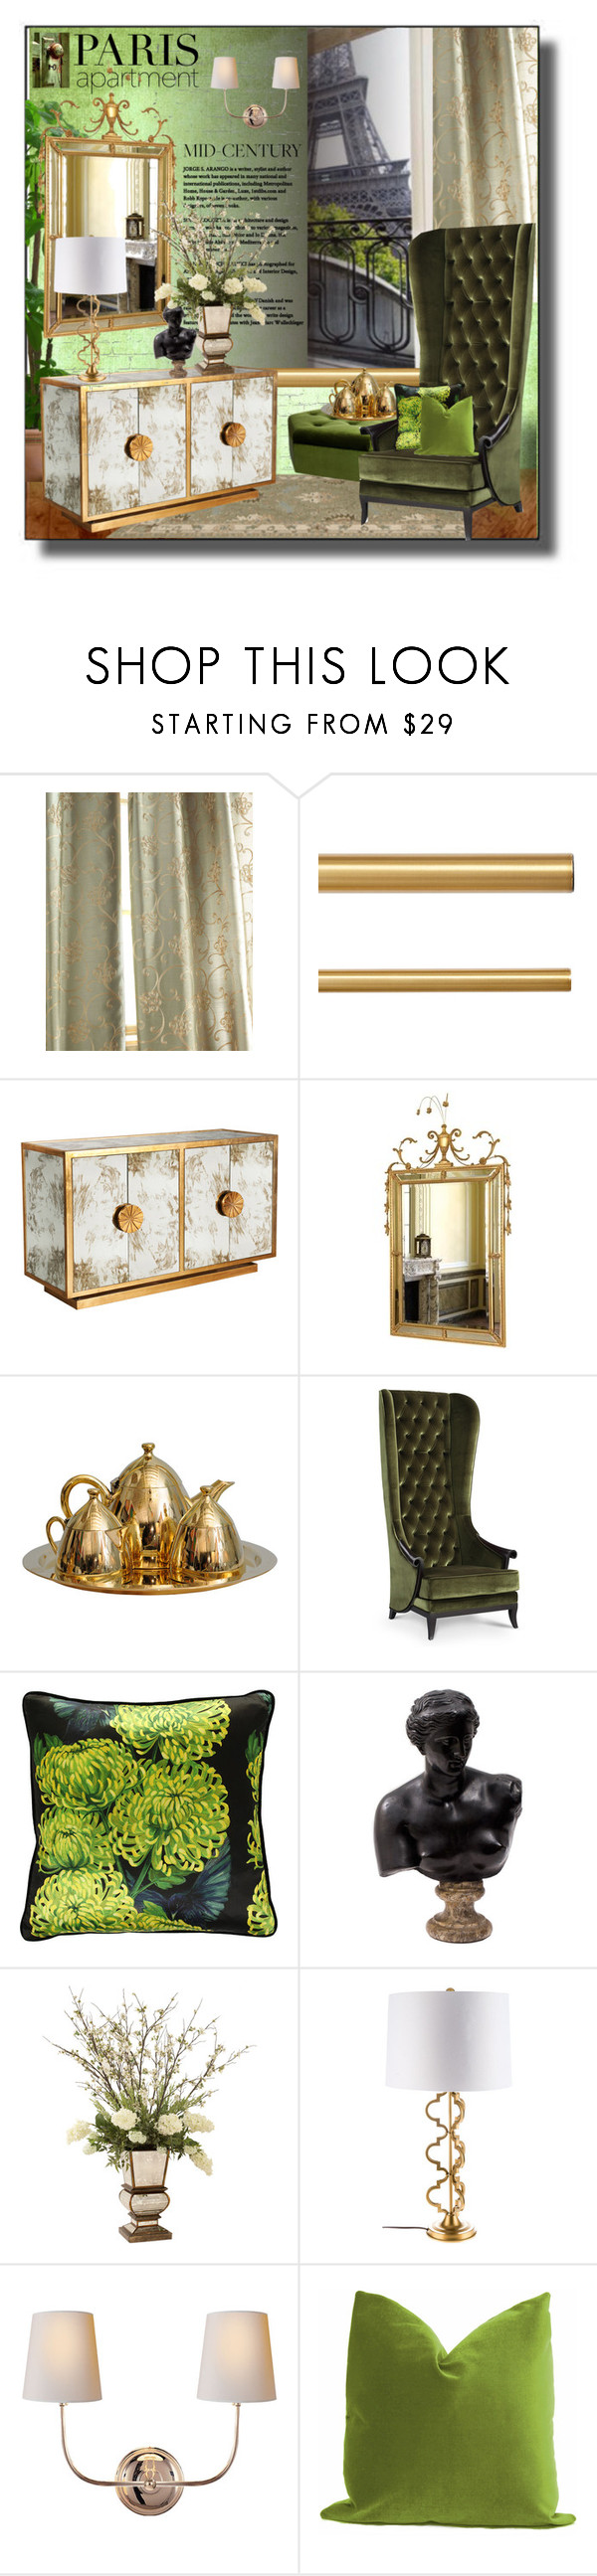 """""""Paris Apartment"""" by idetached ❤ liked on Polyvore featuring interior, interiors, interior design, home, home decor, interior decorating, Ballard Designs, WALL, Worlds Away and Carol Canner"""